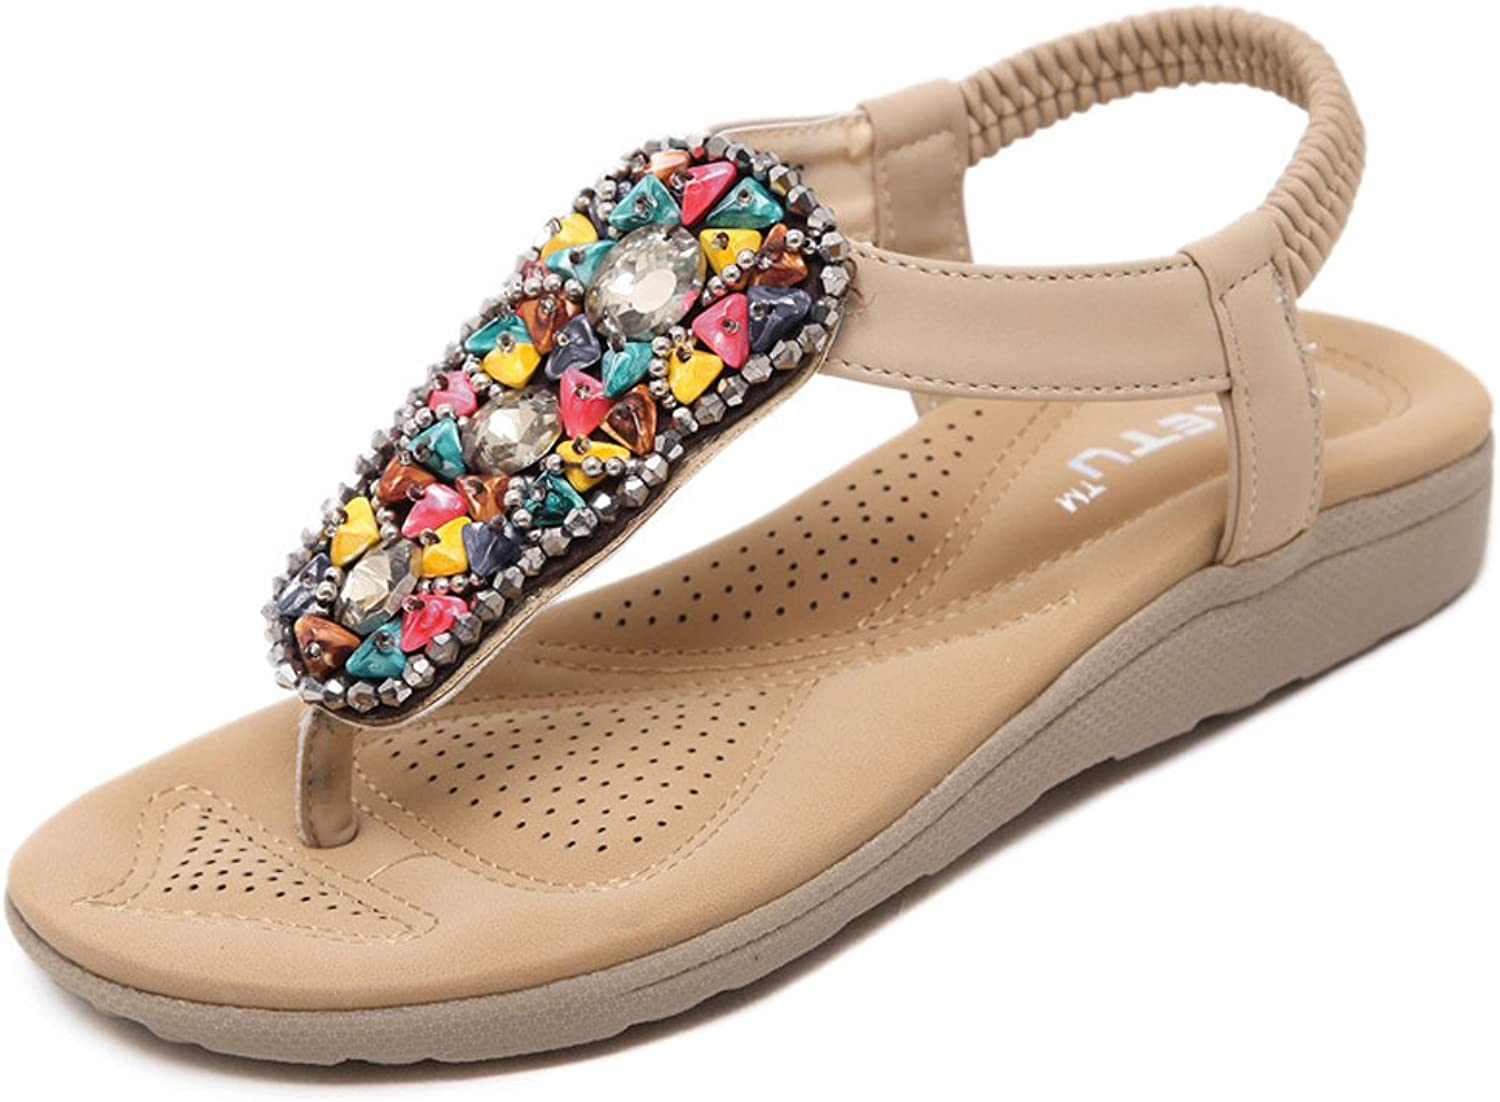 ISHOP-Tech Women's Flat Sandals Summer Casual Open Toes Pearls Sandals Brown